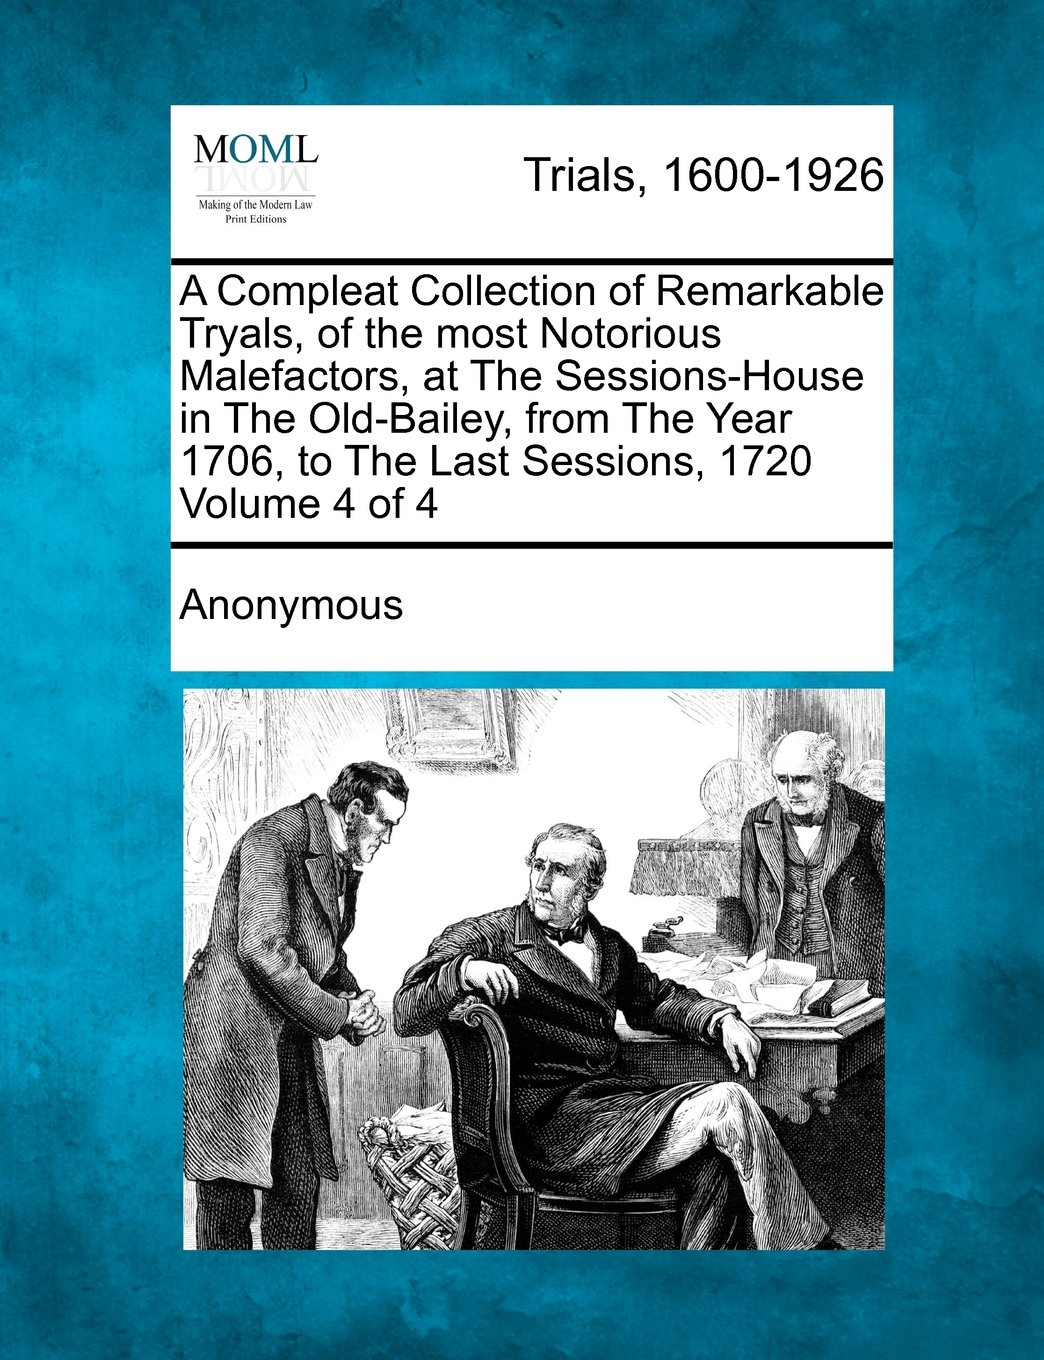 A Compleat Collection of Remarkable Tryals, of the most Notorious Malefactors, at The Sessions-House in The Old-Bailey, from The Year 1706, to The Last Sessions, 1720 Volume 4 of 4 pdf